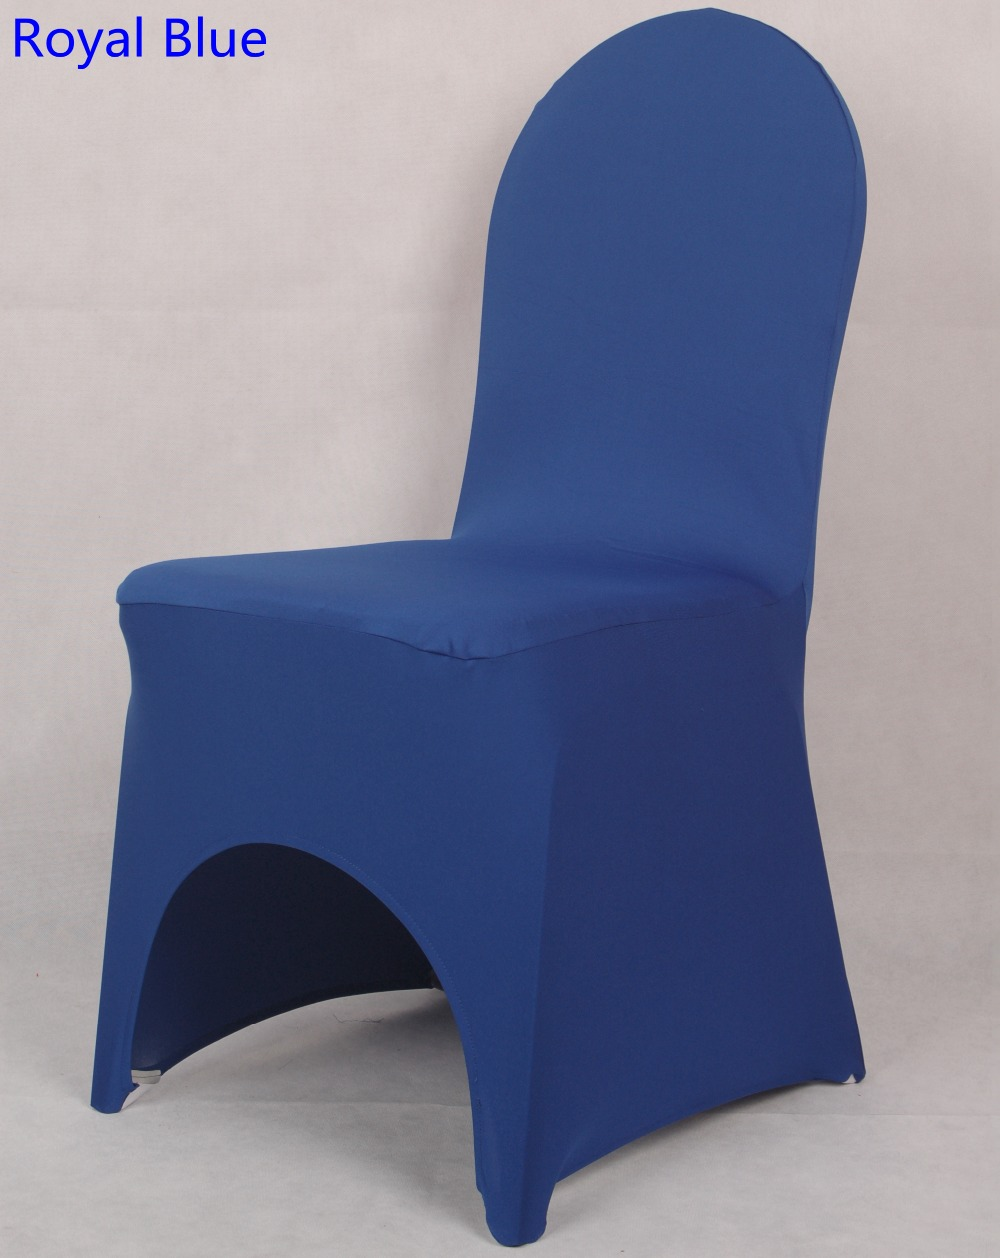 Royal Blue Chair Us 1 6 Colour Royal Blue Lycra Chair Cover For Wedding Decoration Banquet Spandex Chair Cover Wholesale Dinning Chairs Arch Front Open In Chair